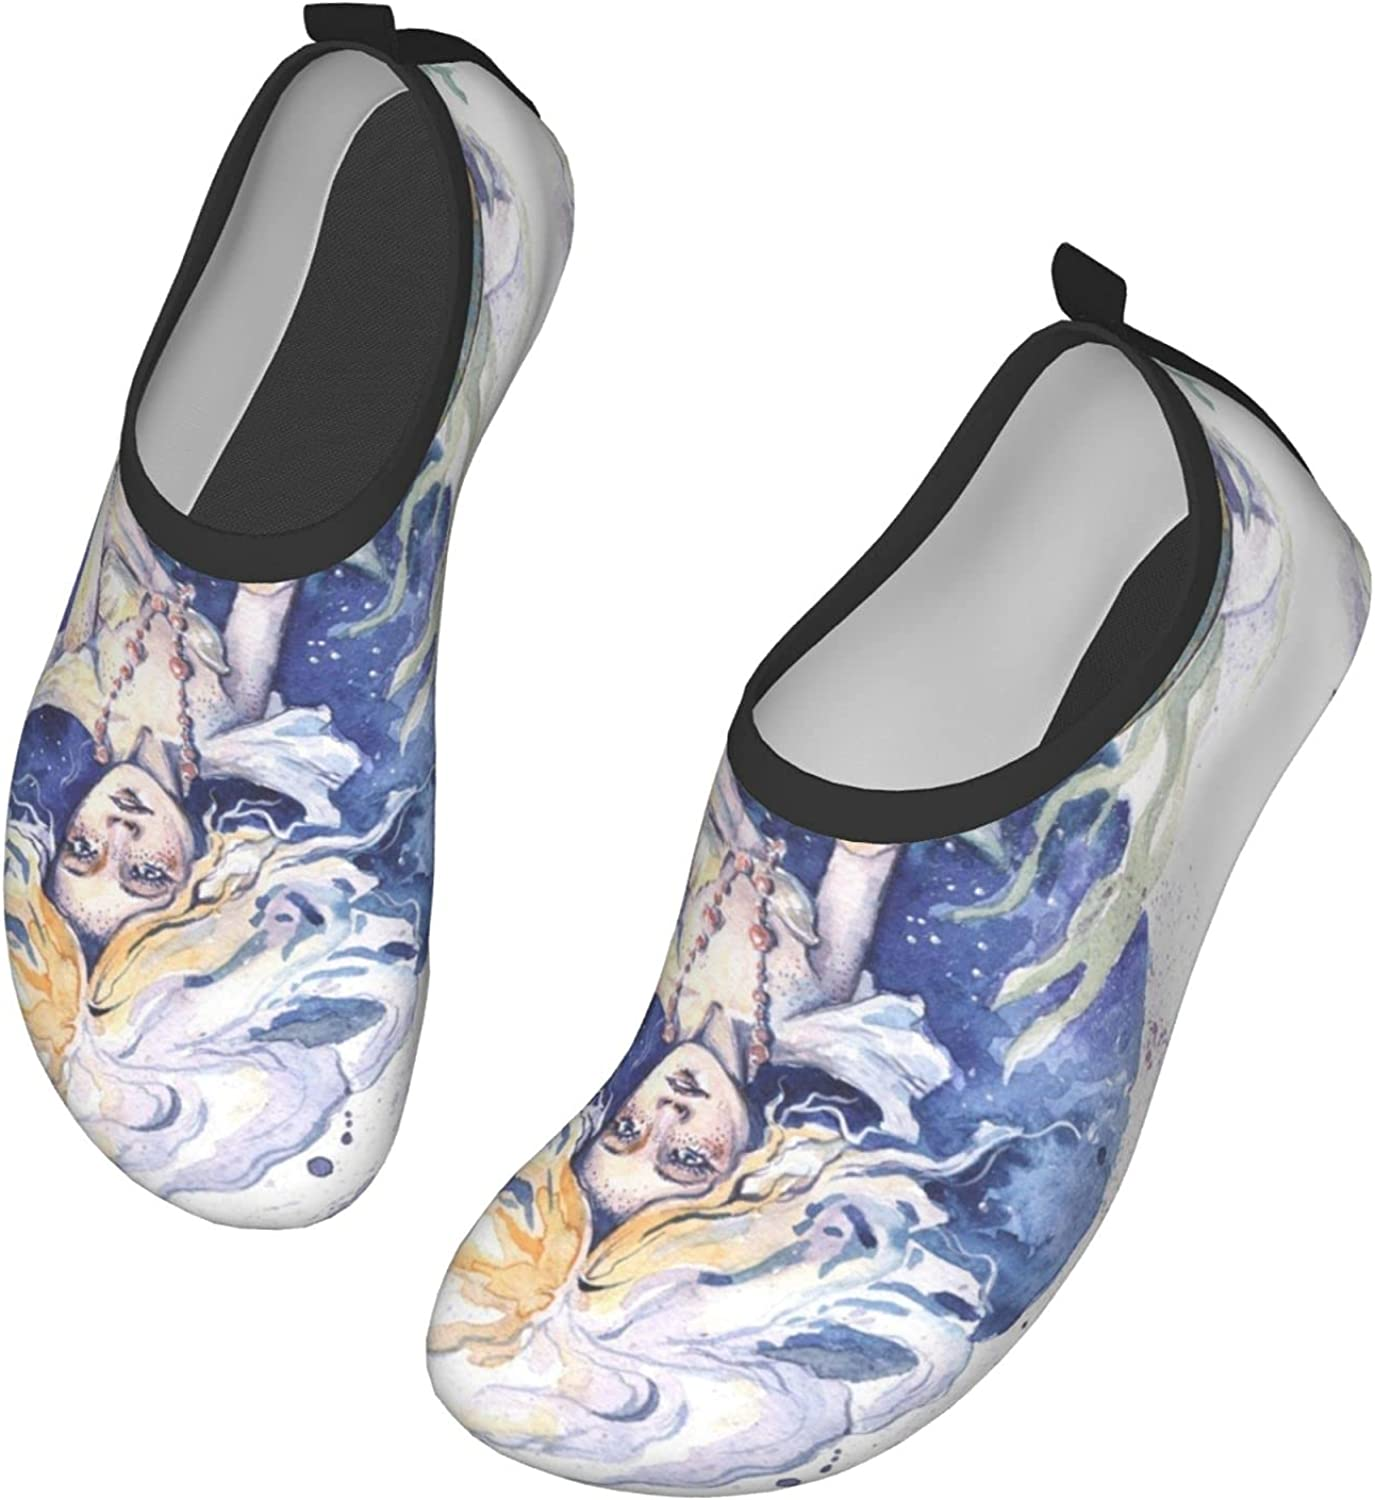 A Mermaid Girl with A Basket of Starfish Water Sports Shoes Barefoot Quick-Dry Aqua Yoga Socks Slip-on for Men Women